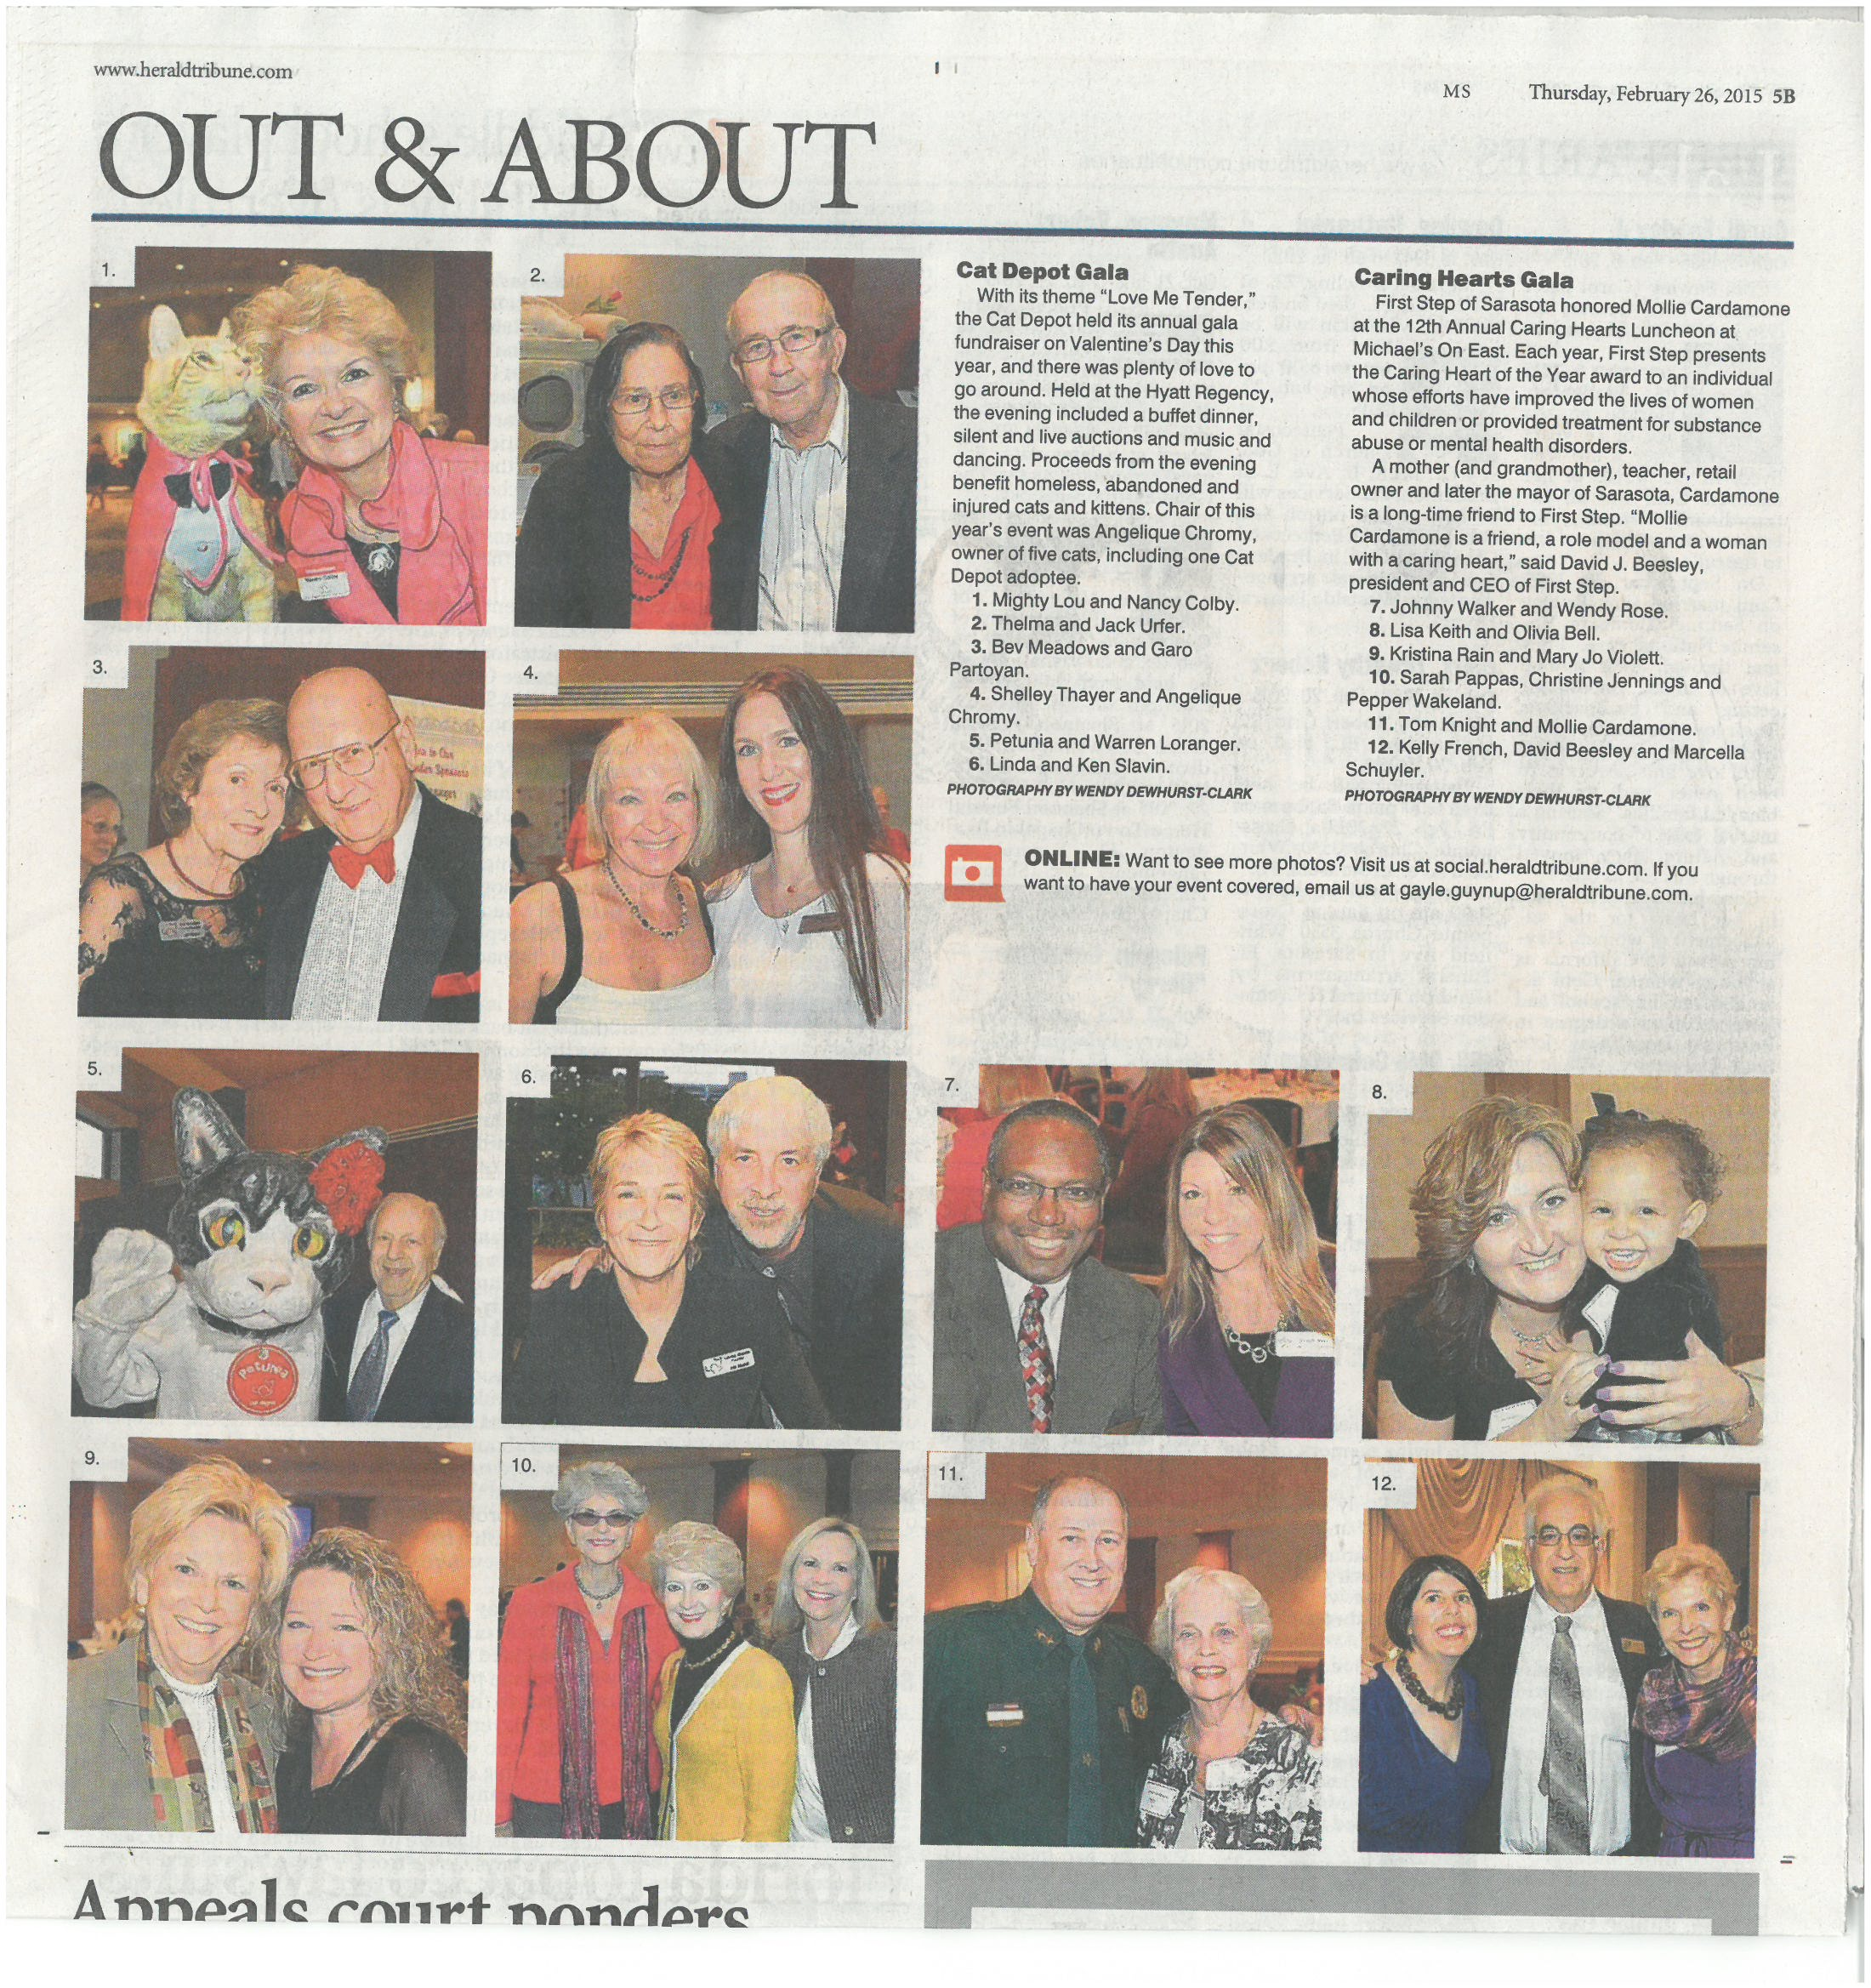 Caring Hearts coverage from the Sarasota Herald Tribune, February 26, 2015